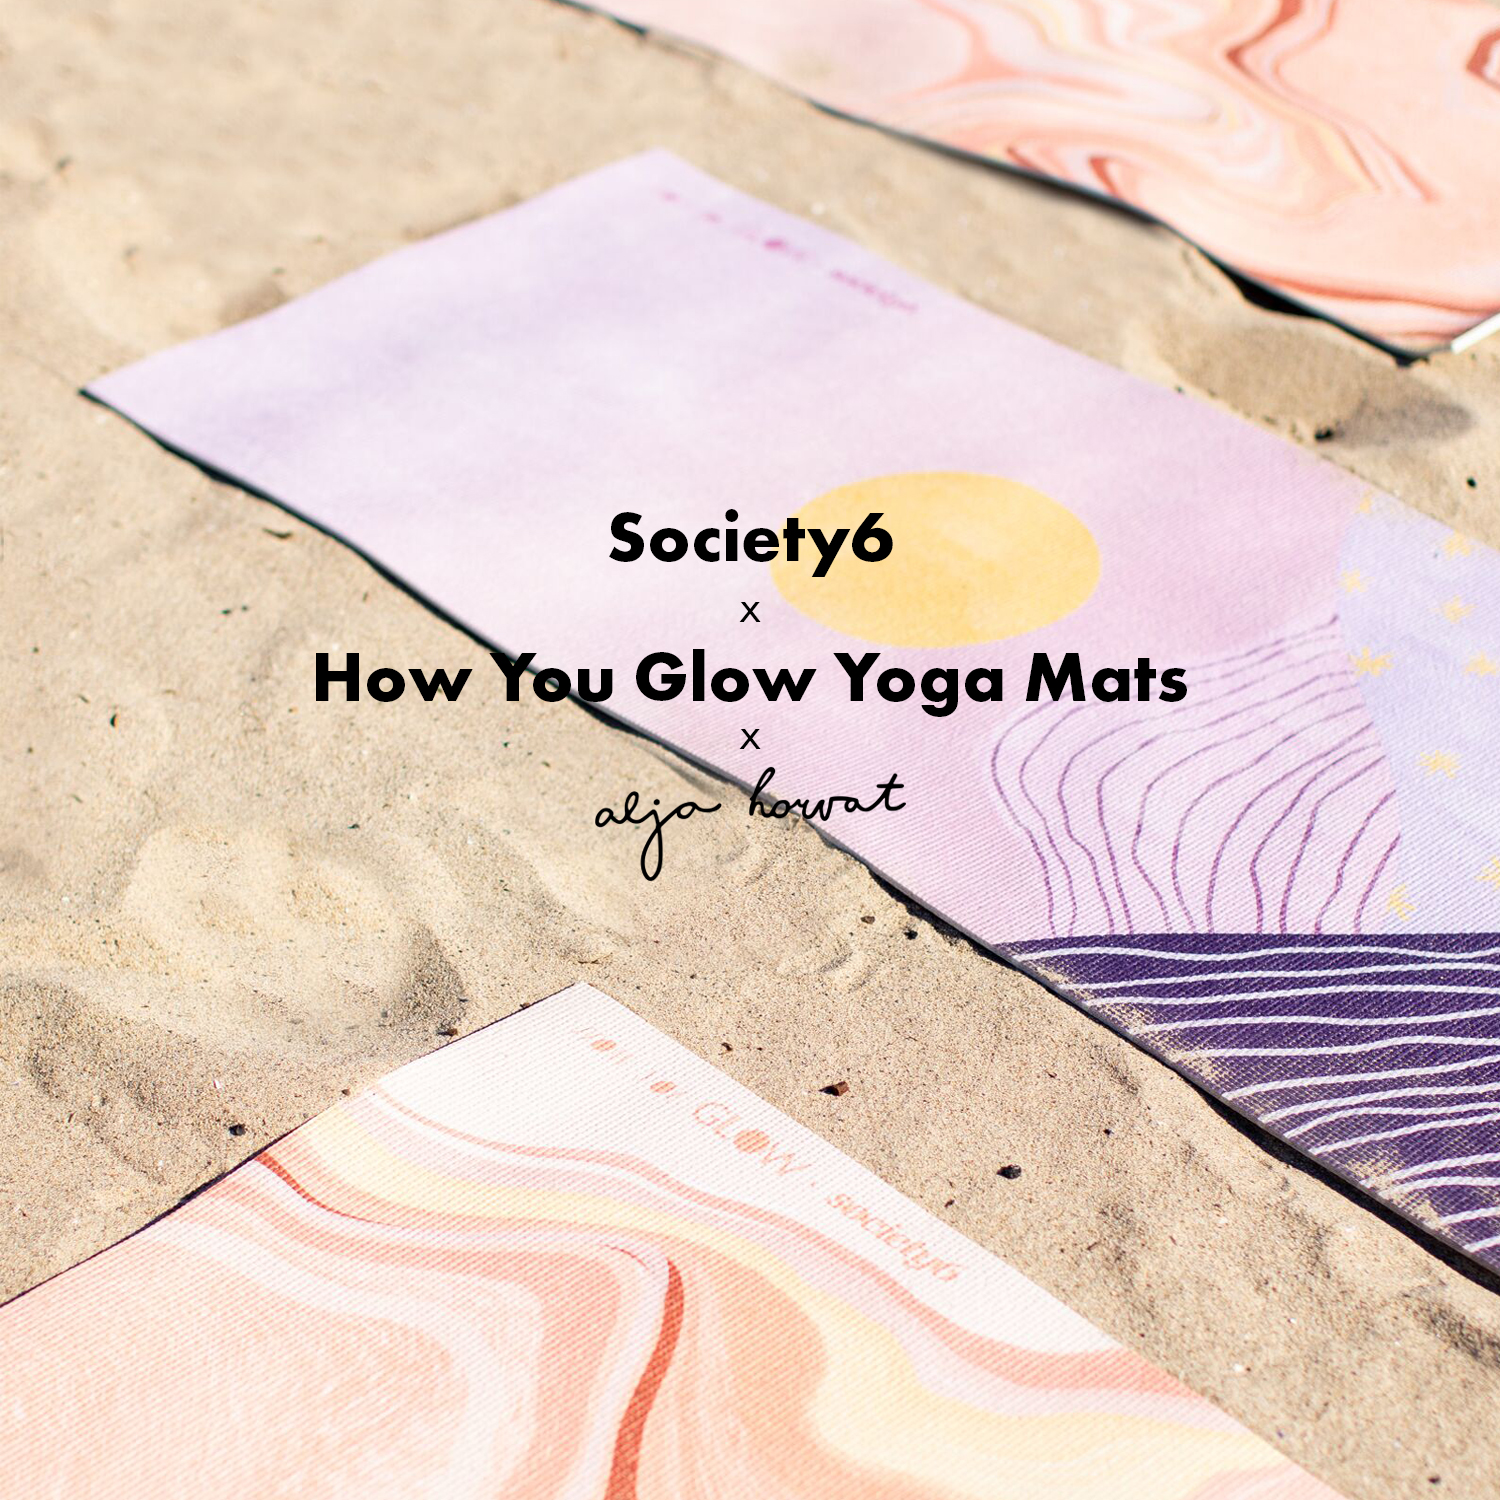 Society6 X How You Glow Yoga Mats X Alja Horvat